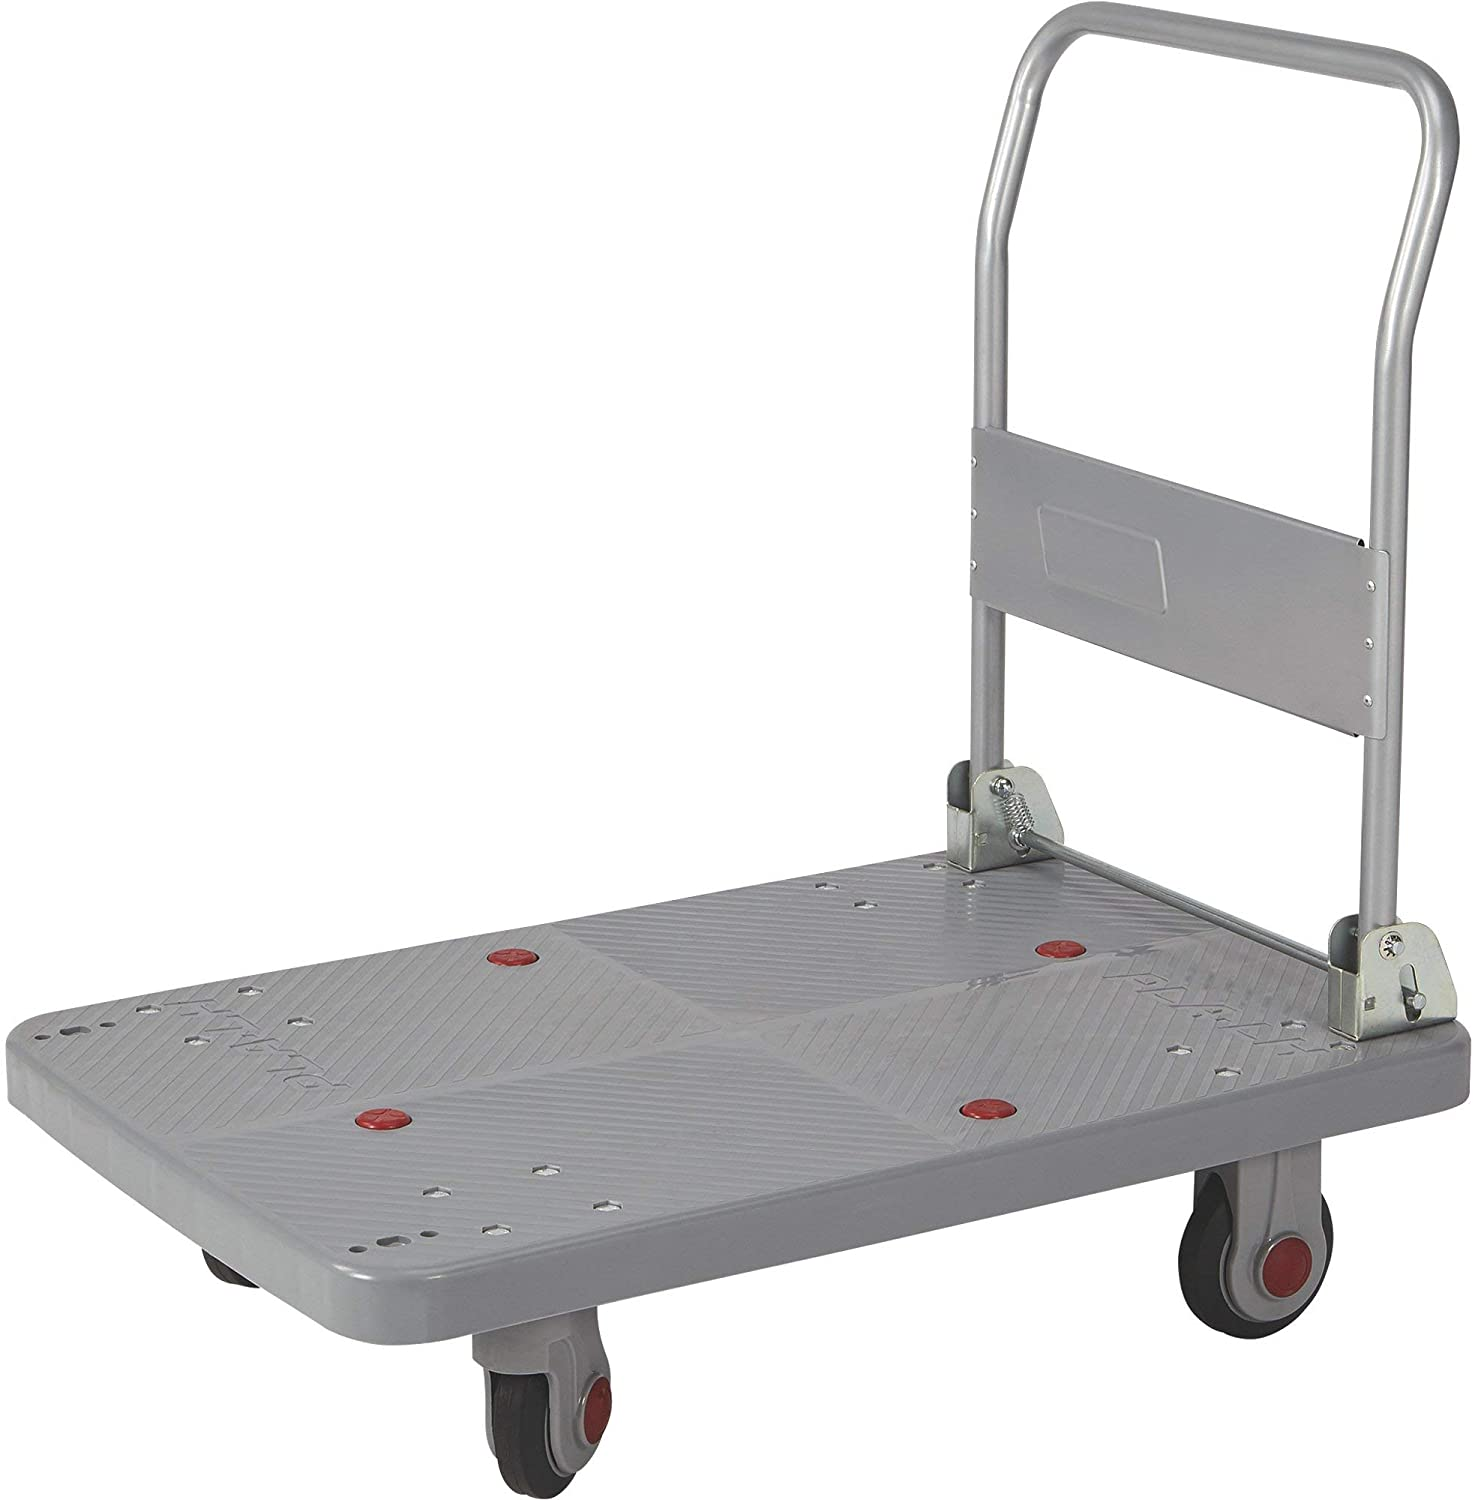 Strongway Platform Cart with Ultra-Quiet Casters - 660-Lb. Capacity, 36in.L x 24in.W, 5in. Premium Natural Rubber Casters